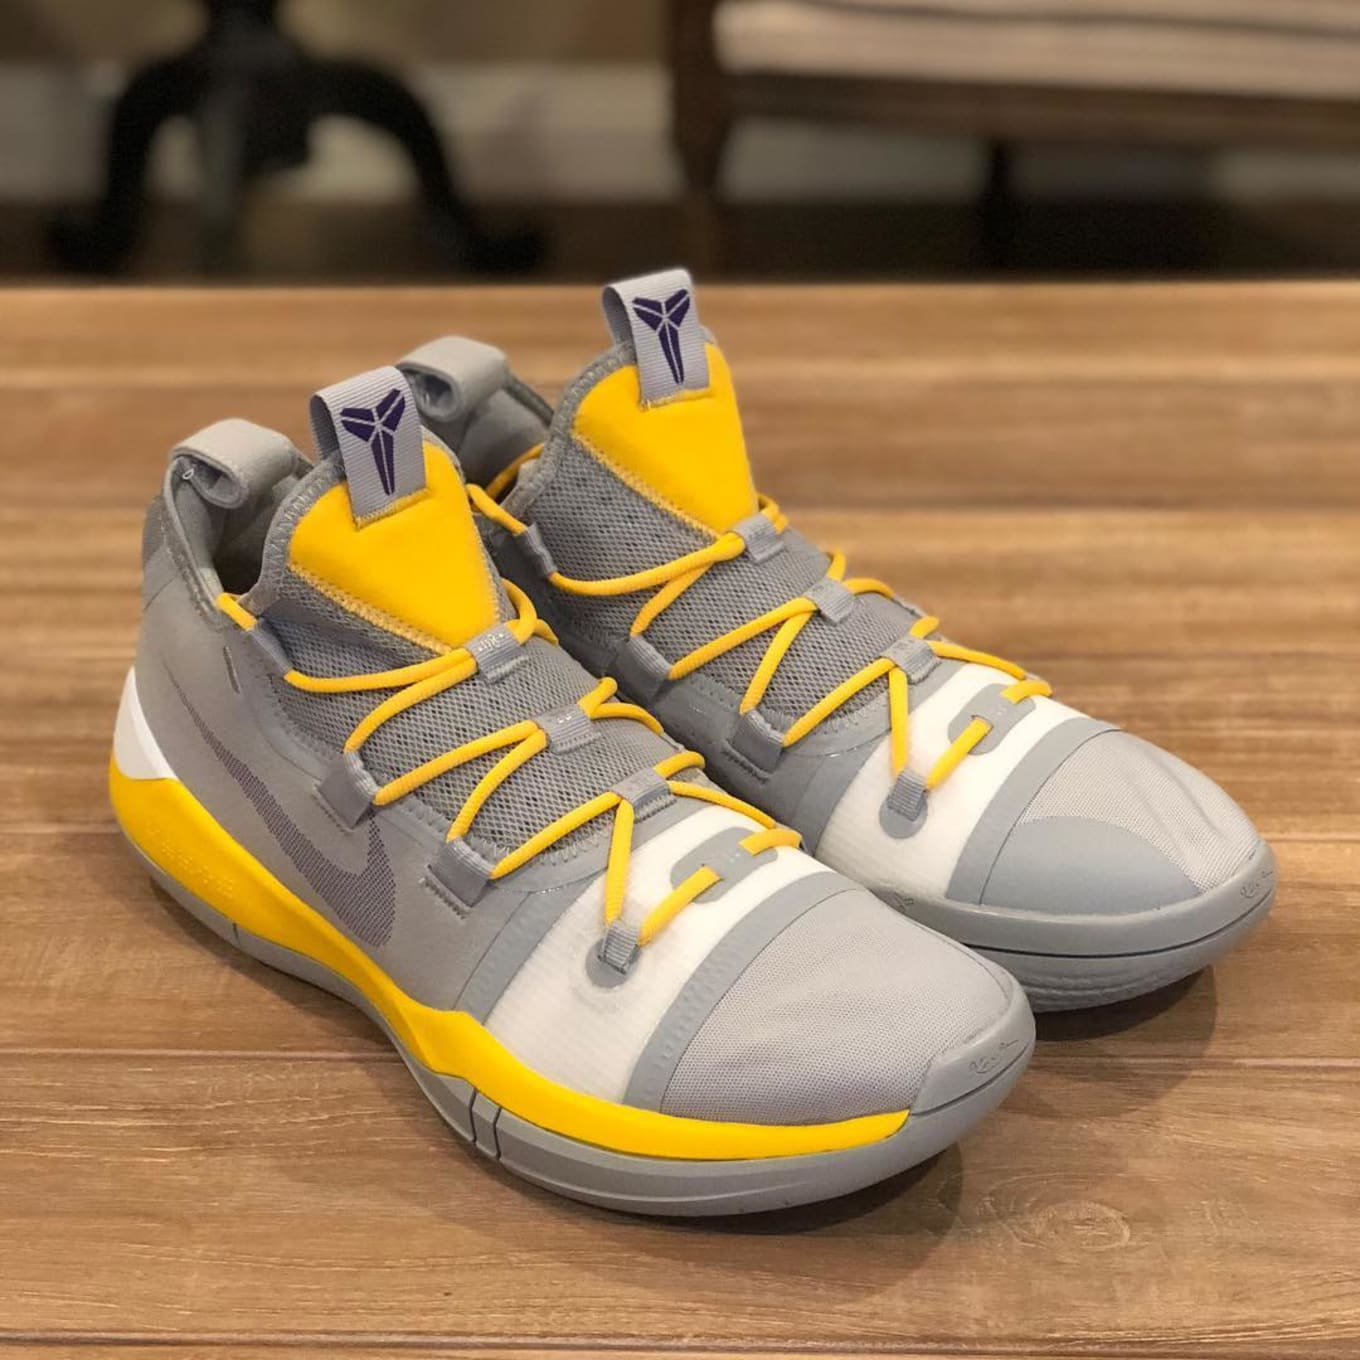 f8db9ee2135d NIKEiD Nike By You Kobe A.D. Exodus Designs